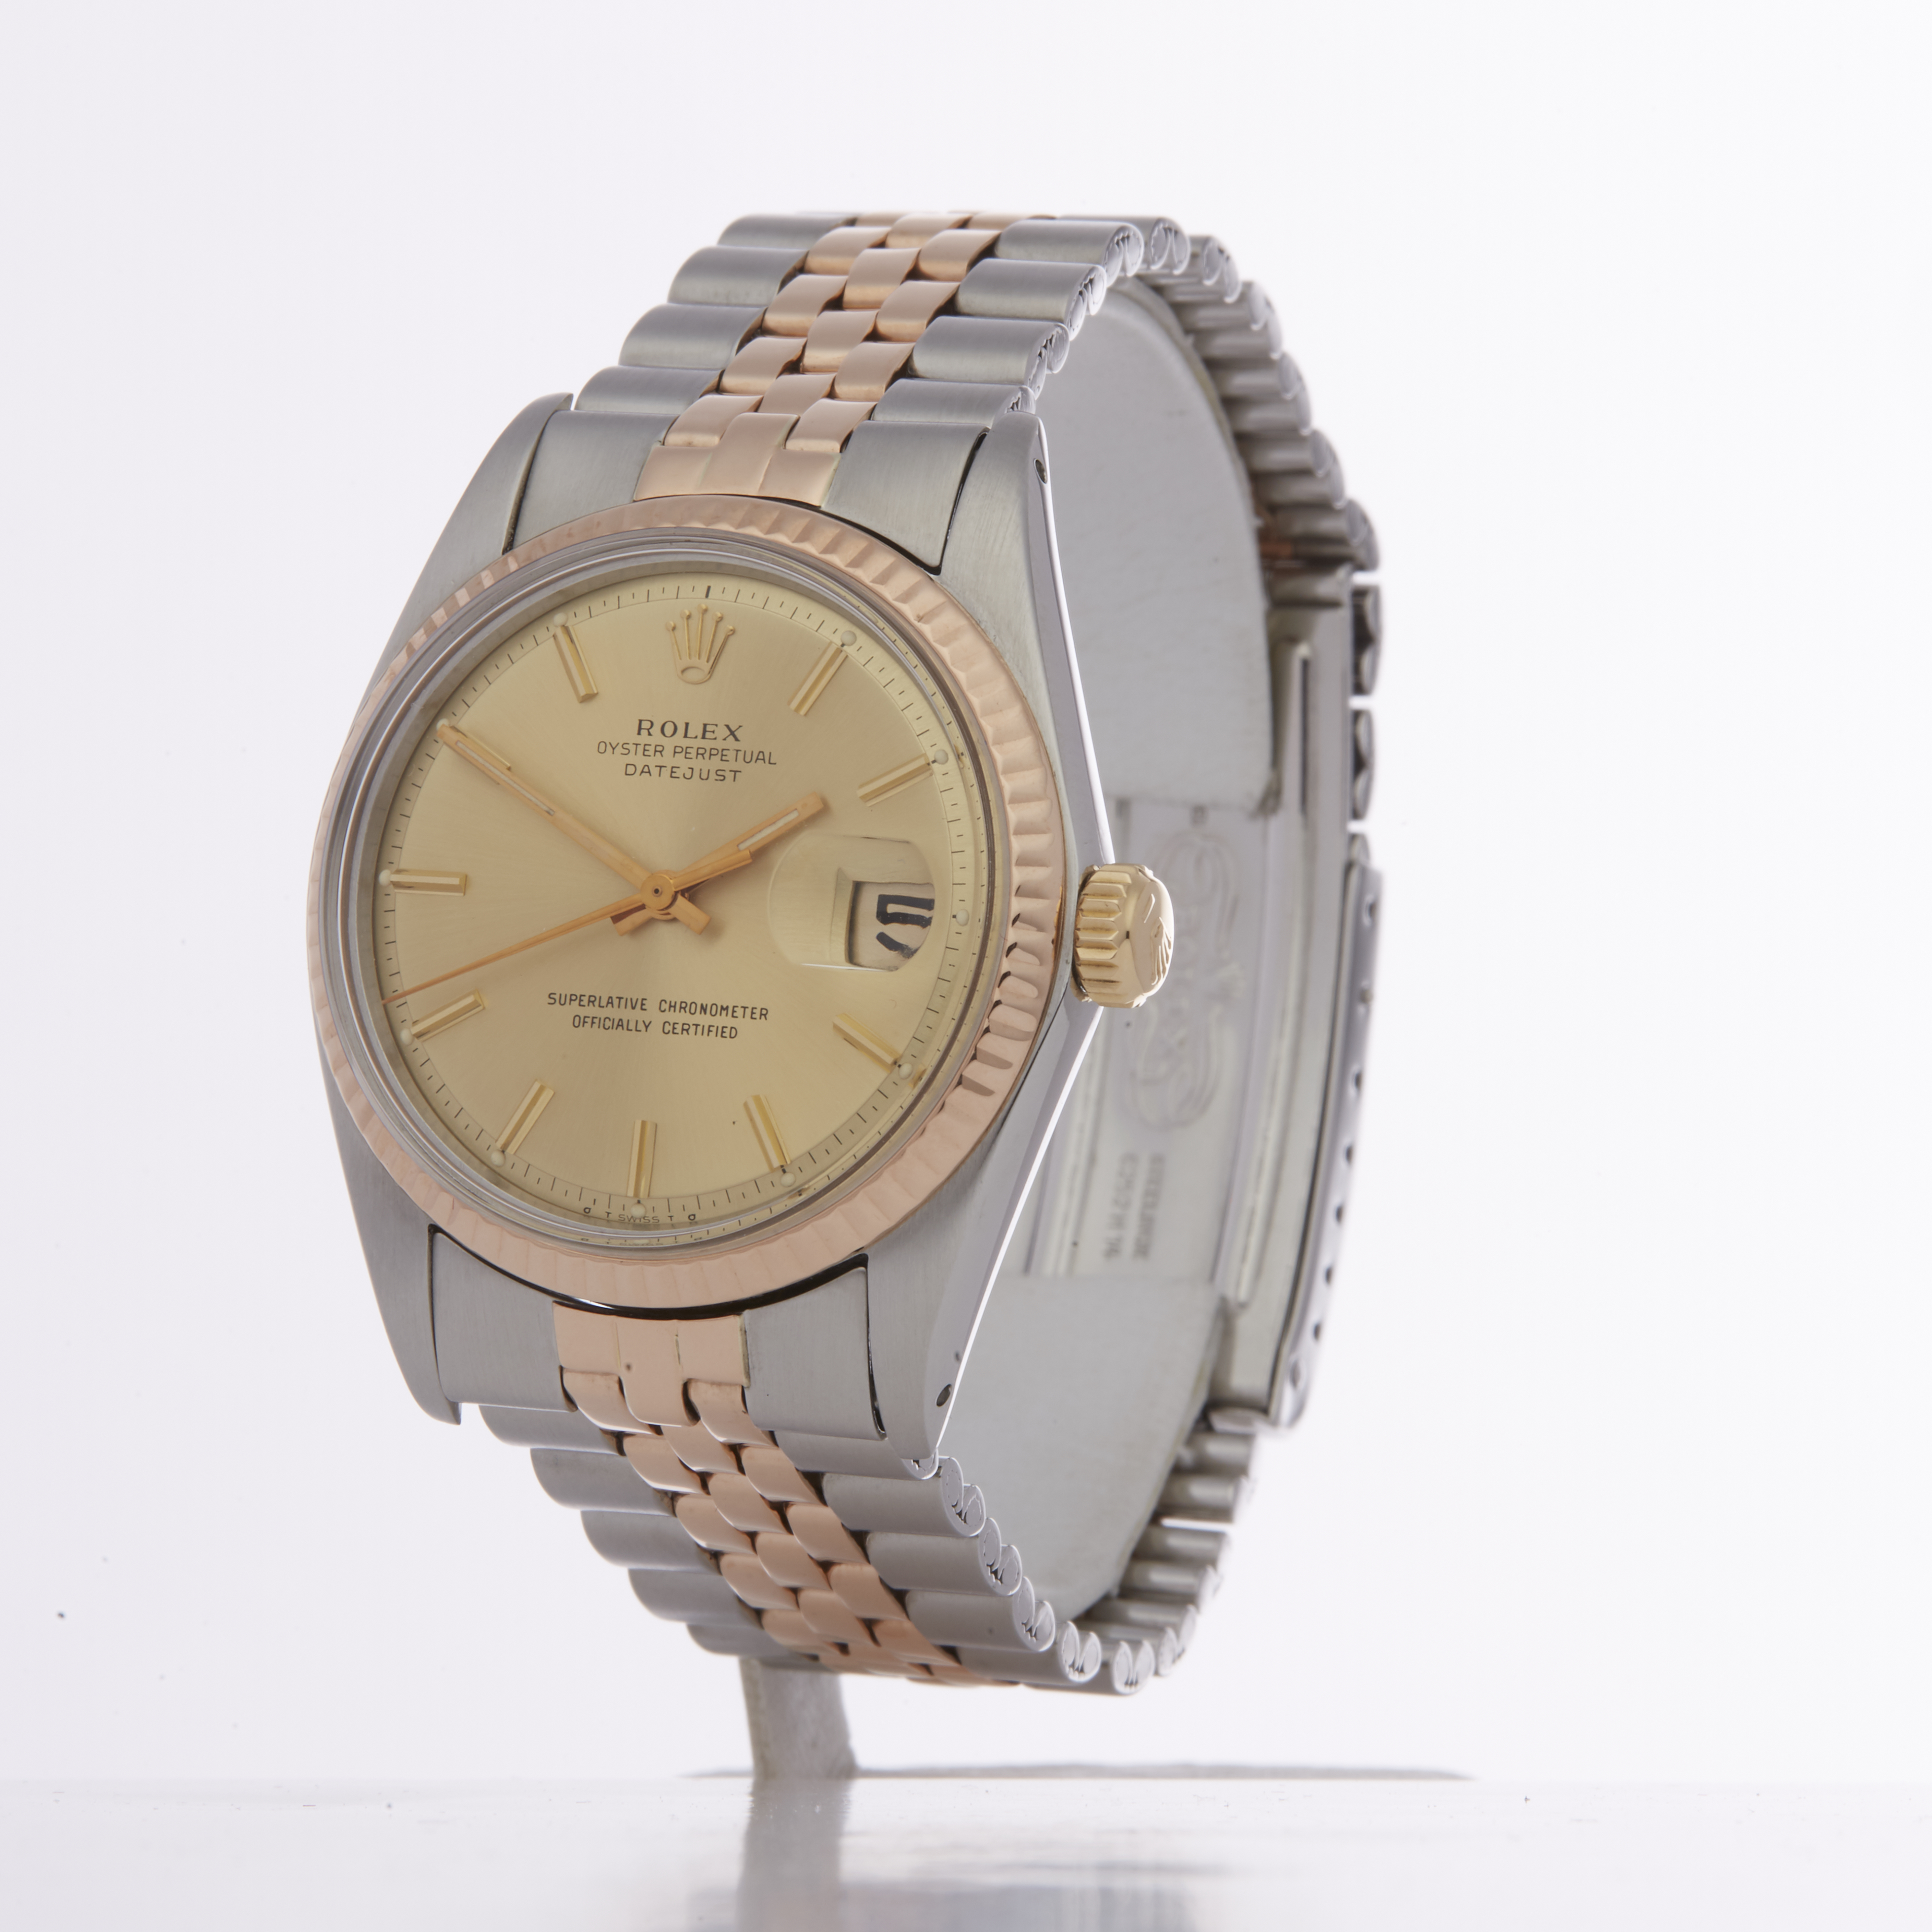 Rolex Datejust 36 1601 Men Rose Gold & Stainless Steel Watch - Image 6 of 6